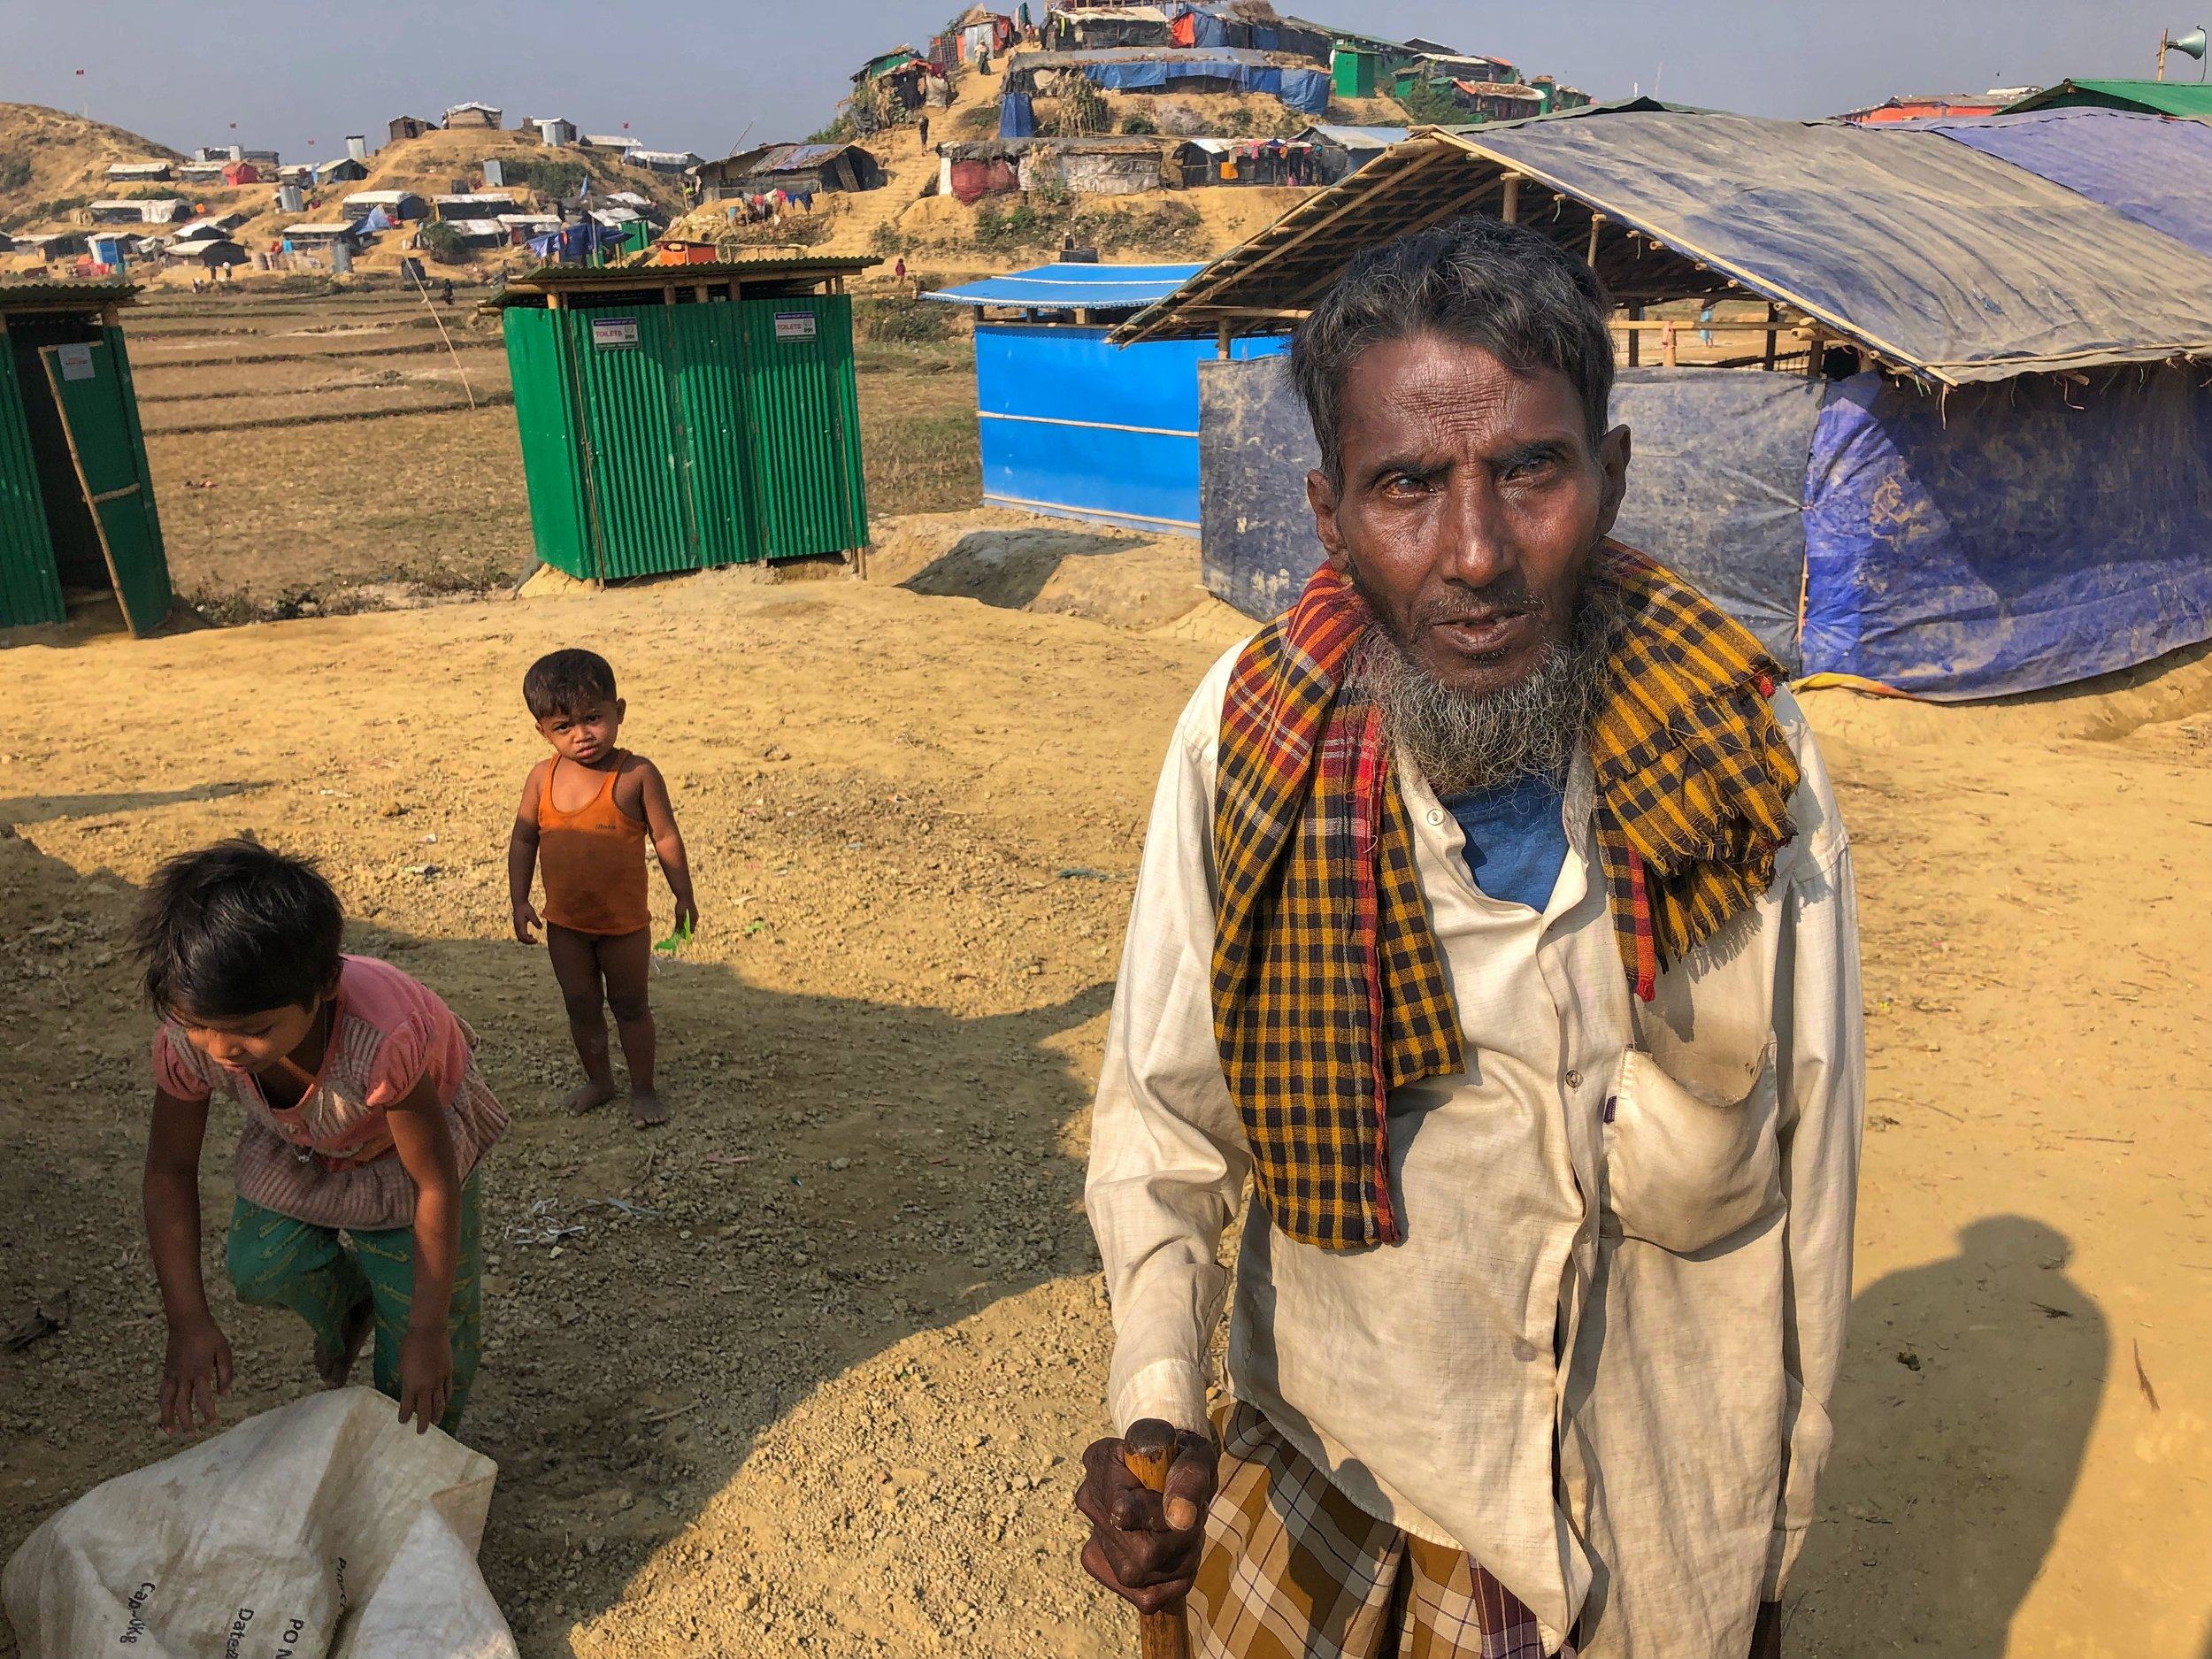 Displaced and dispossessed with nowhere to go. Unless international intervention succeeds, the future looks bleak for the Rohingya.